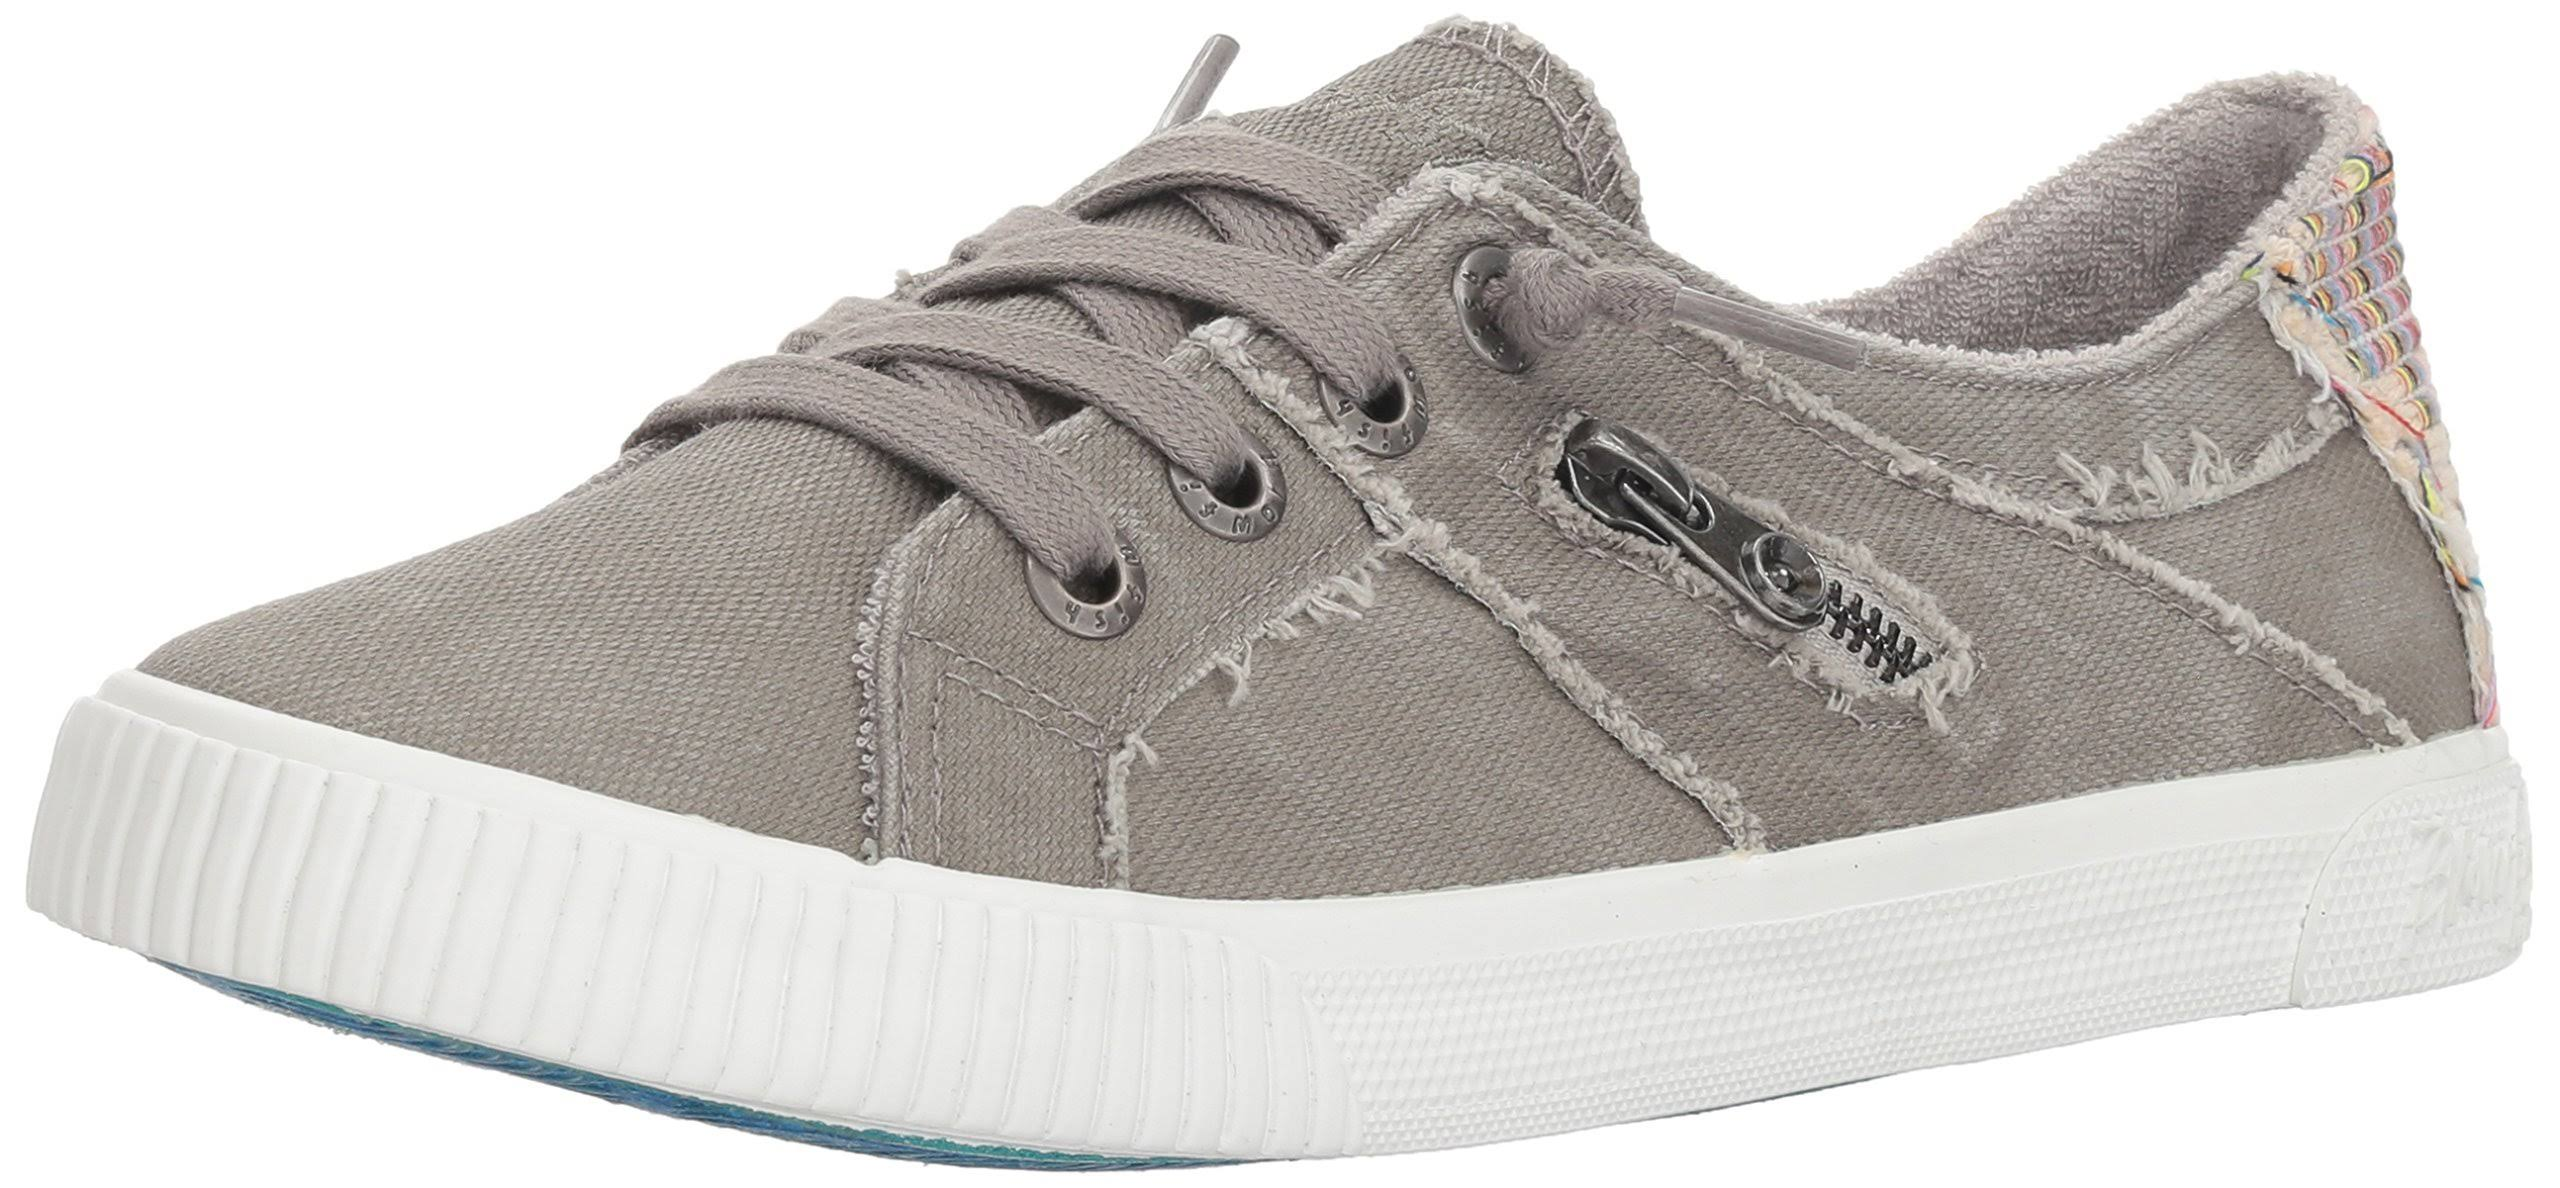 Blowfish Women's Fruit Sneakers - Wolf Gray, Size 8.5